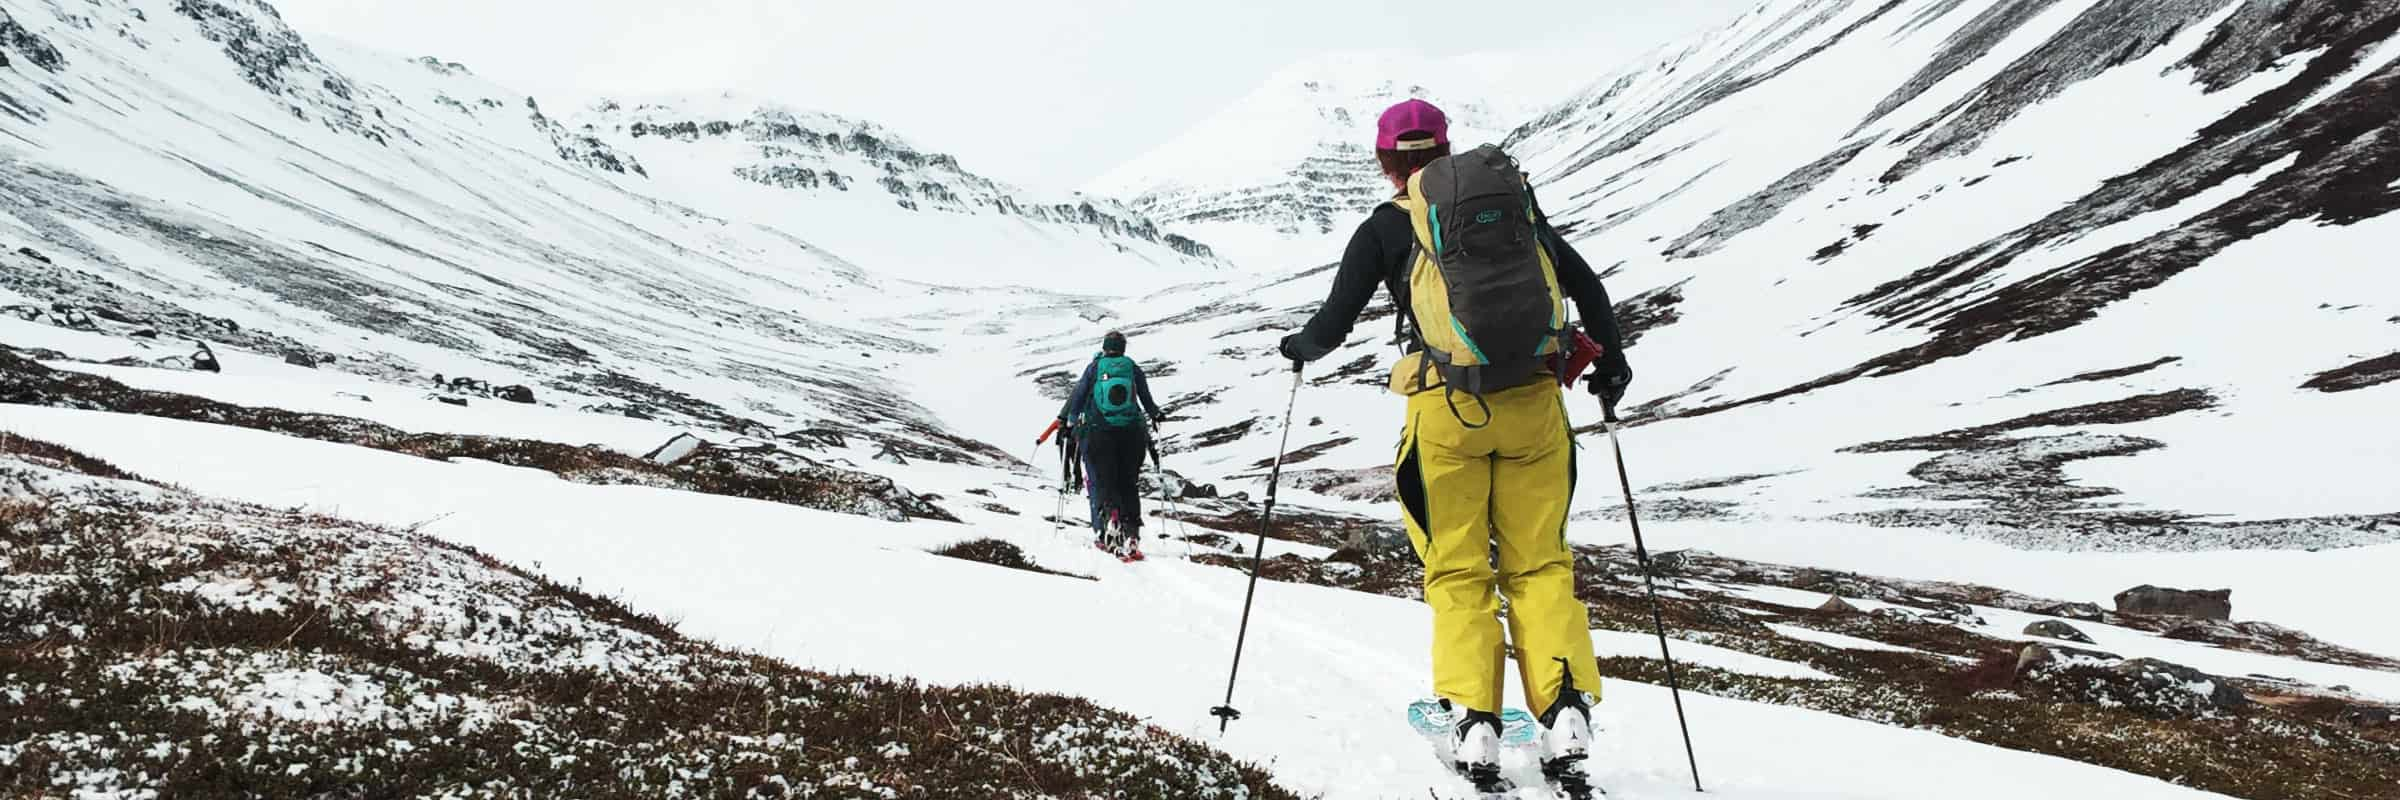 Smartwool, Iceland, and Ski Touring